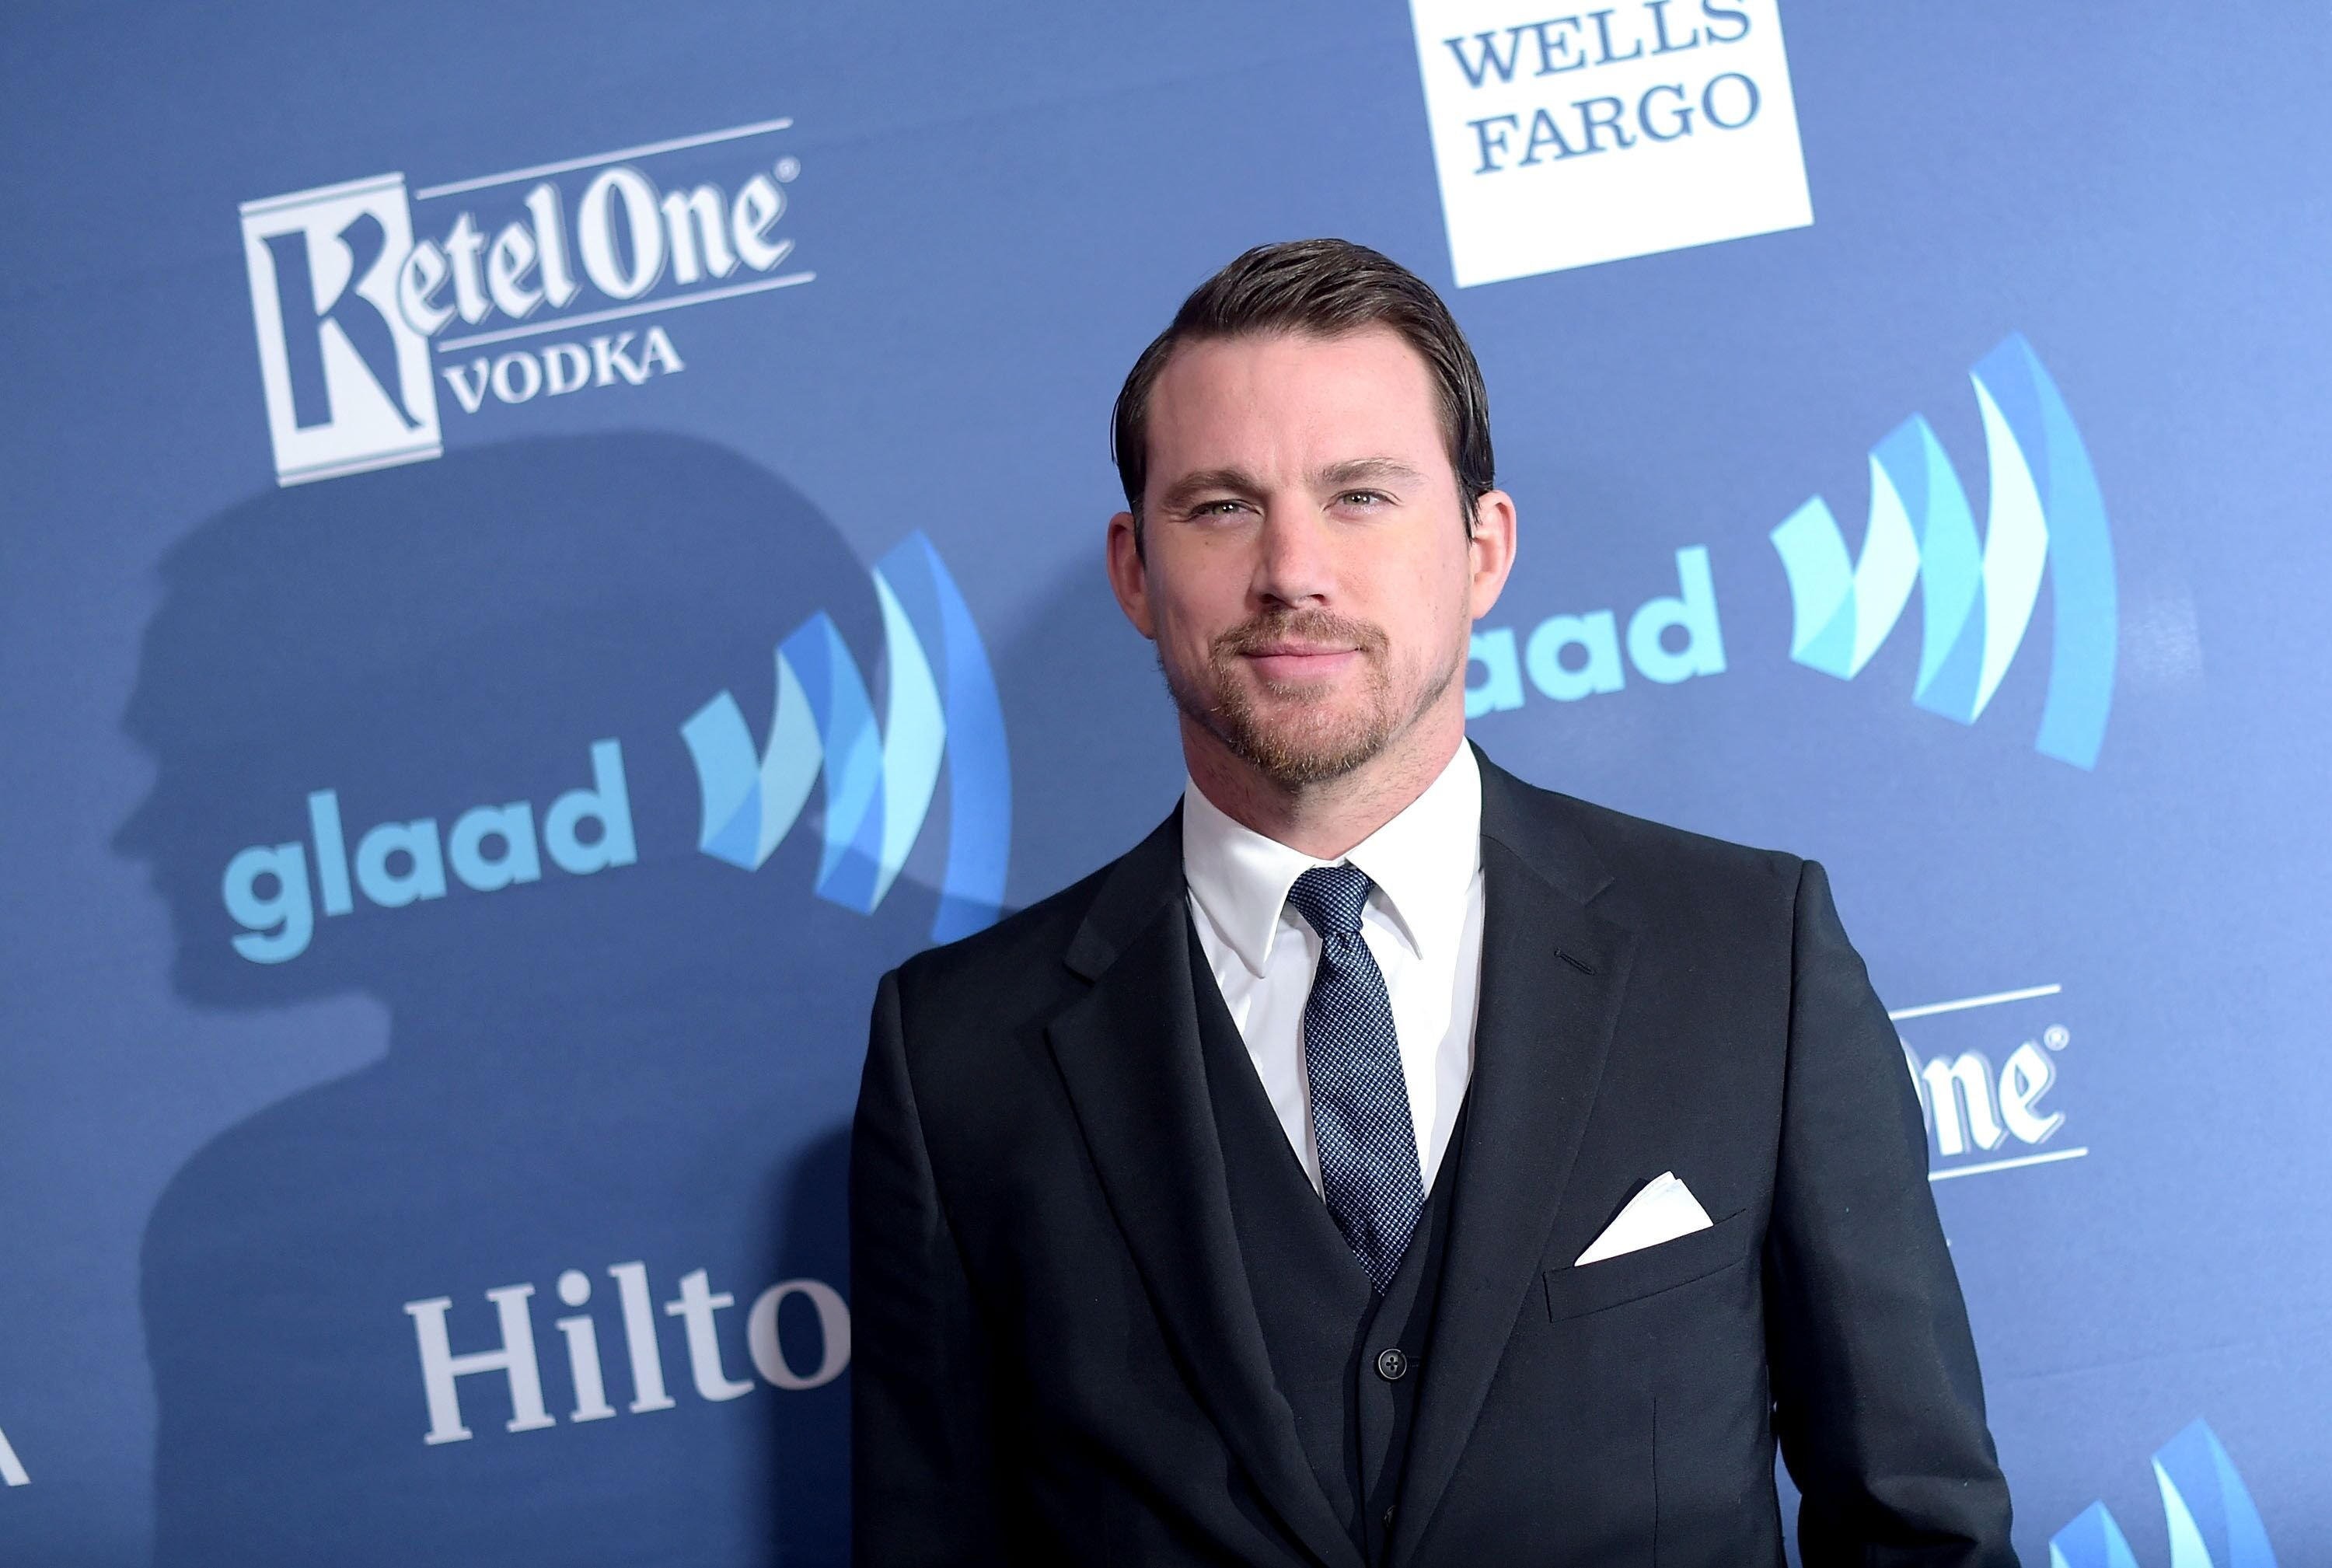 L'acteur Channing Tatum assiste à la 26ème édition des GLAAD Media Awards à l'hôtel Beverly Hilton le 21 mars 2015 à Beverly Hills, Californie | Photo: Getty Image